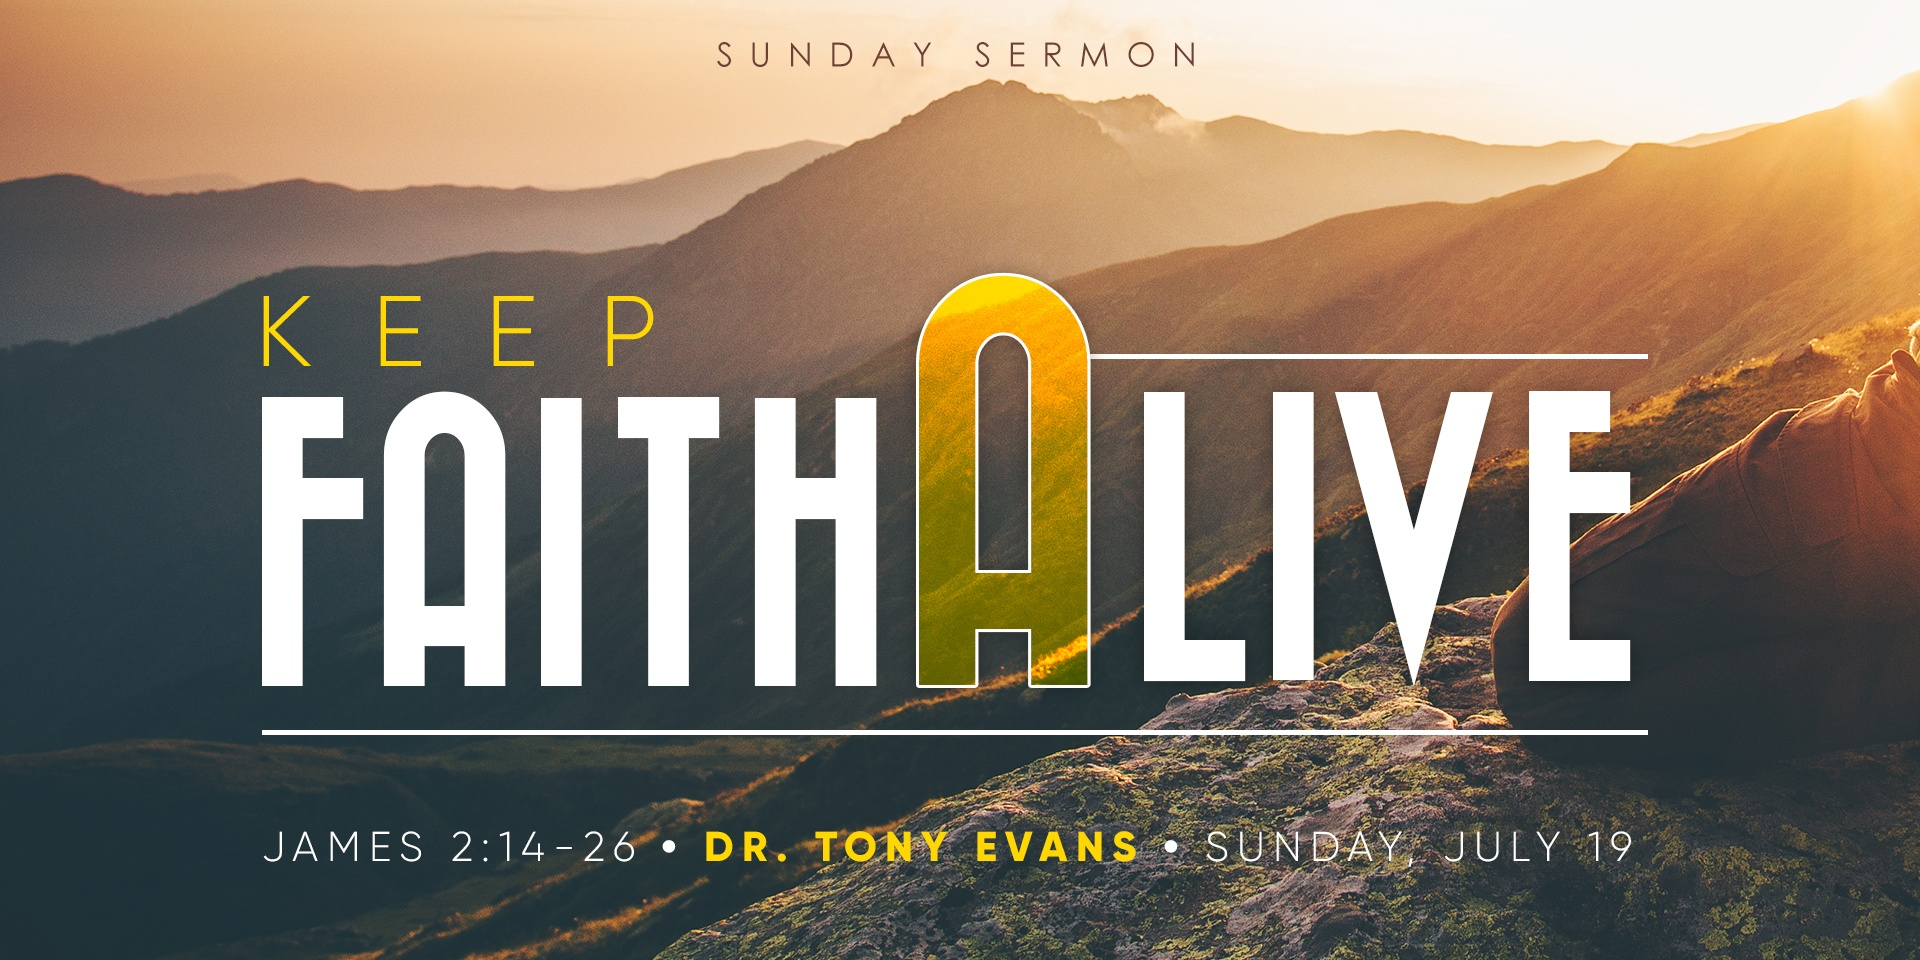 Sunrise over mountains with text saying Keep Faith Alive by Dr. Tony Evans